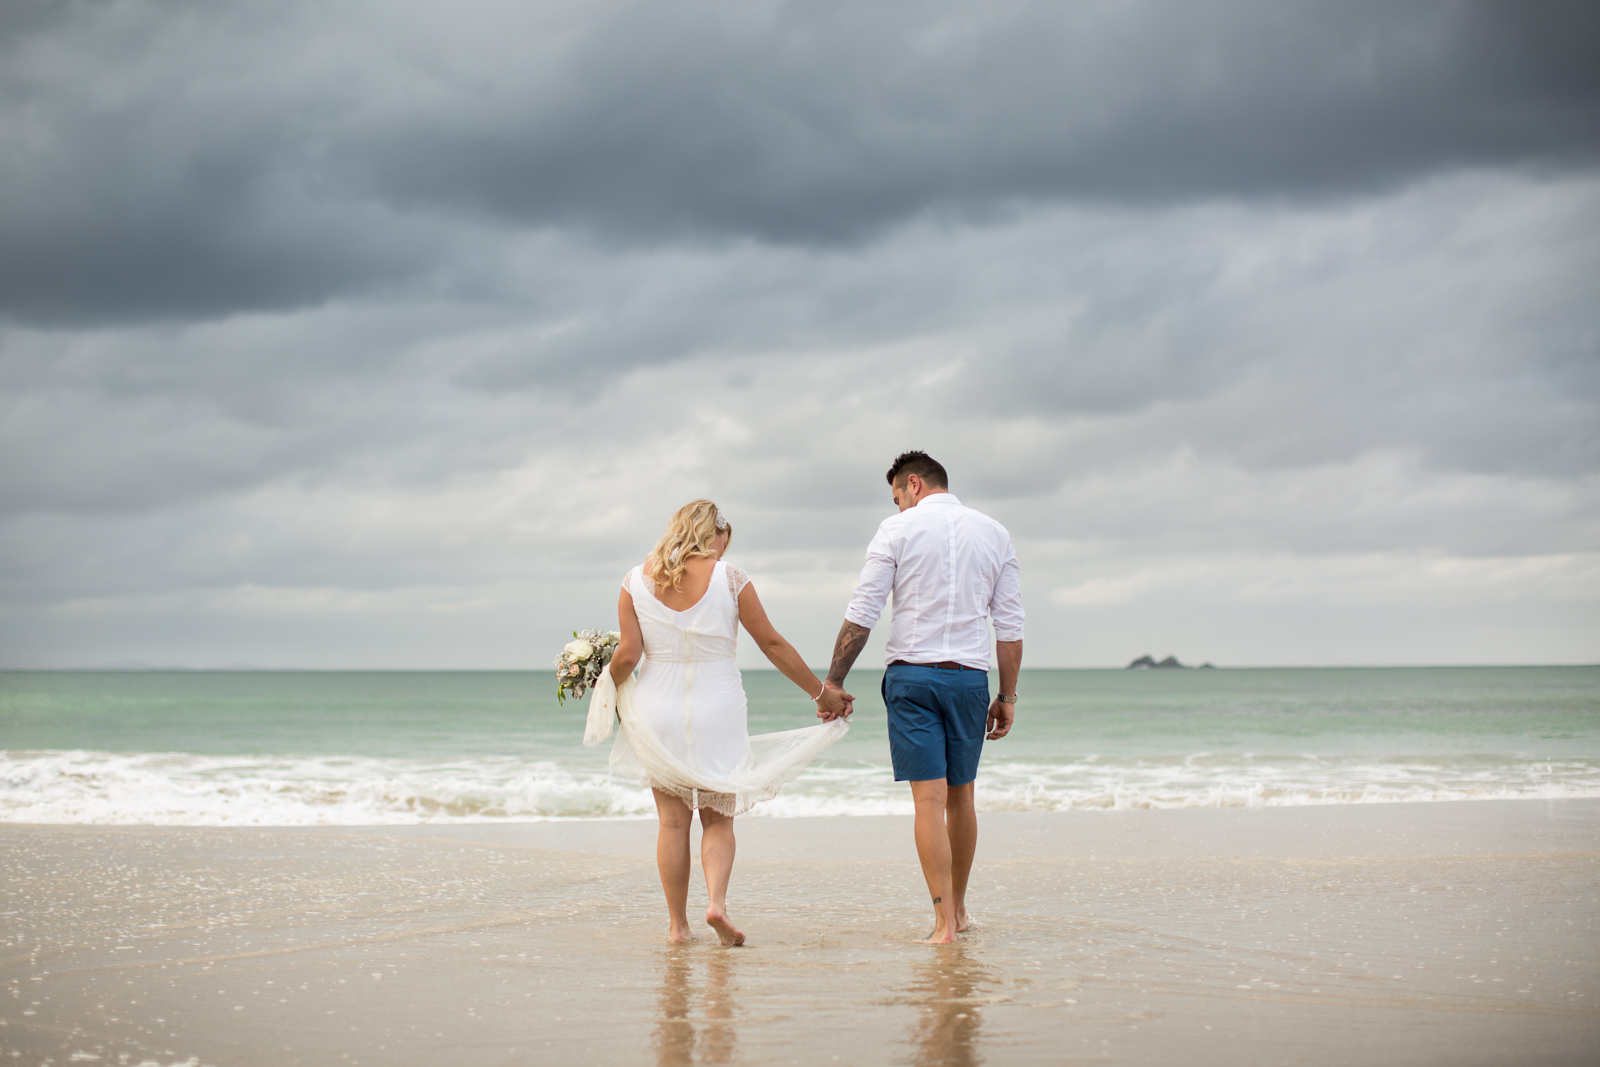 46-Bec_Kilpatrick_Photography_Casey_and_Joel_Byron_Bay_Wedding_BlogBEC_4123